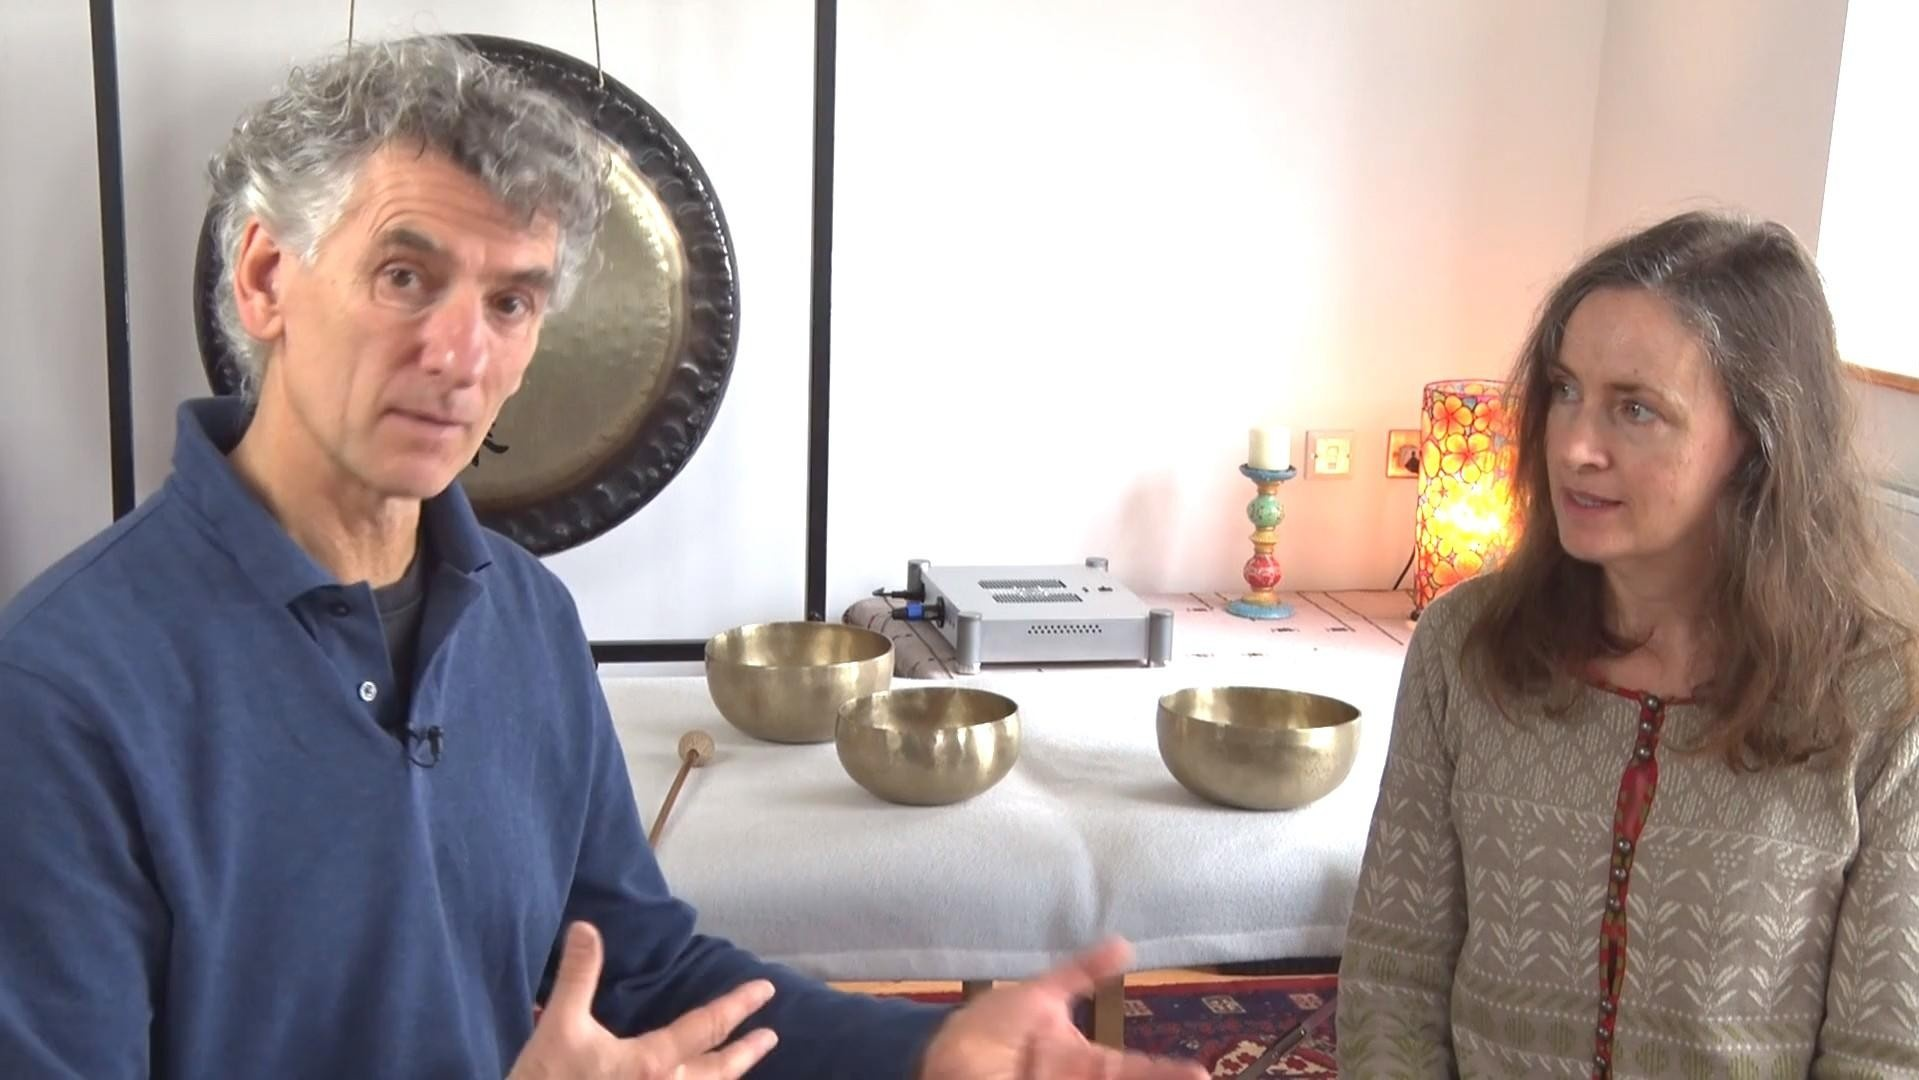 Level 1 Uncertified: Sound Healing With Voice